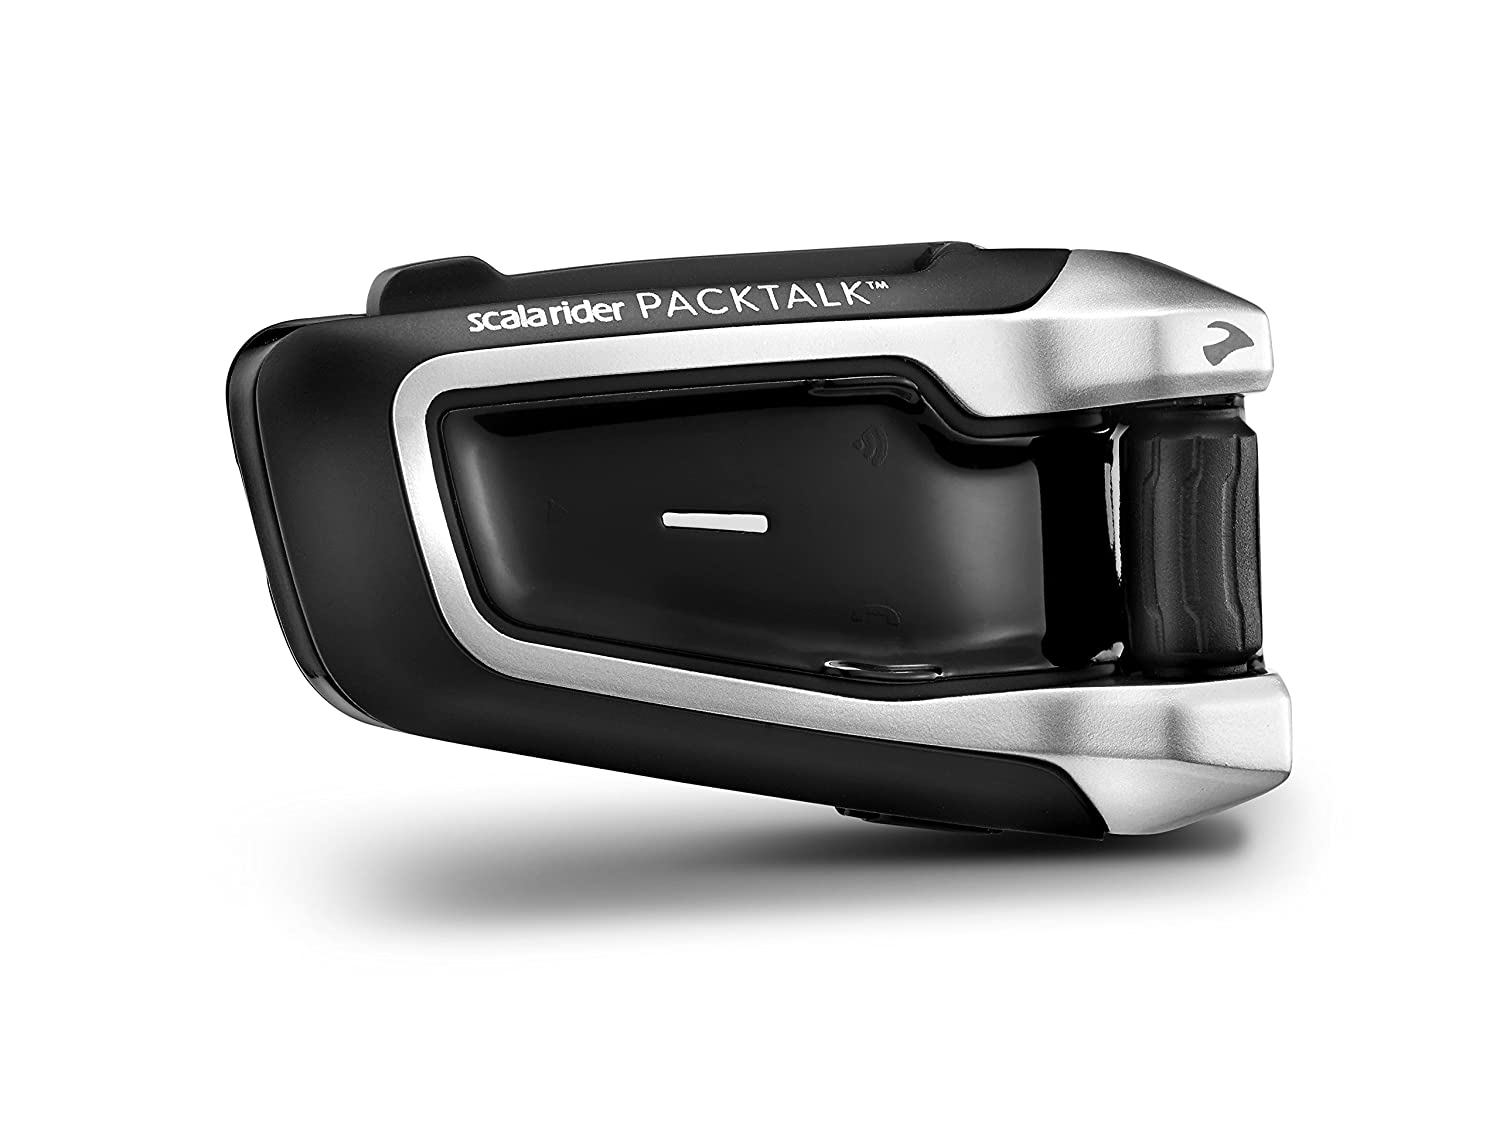 0f68ad8e88c Cardo scala rider PACKTALK - Bluetooth 4.1 and DMC Mesh Technology  Motorcycle Communication and Entertainment System with HD Audio, Connect 2  to 15 riders ...